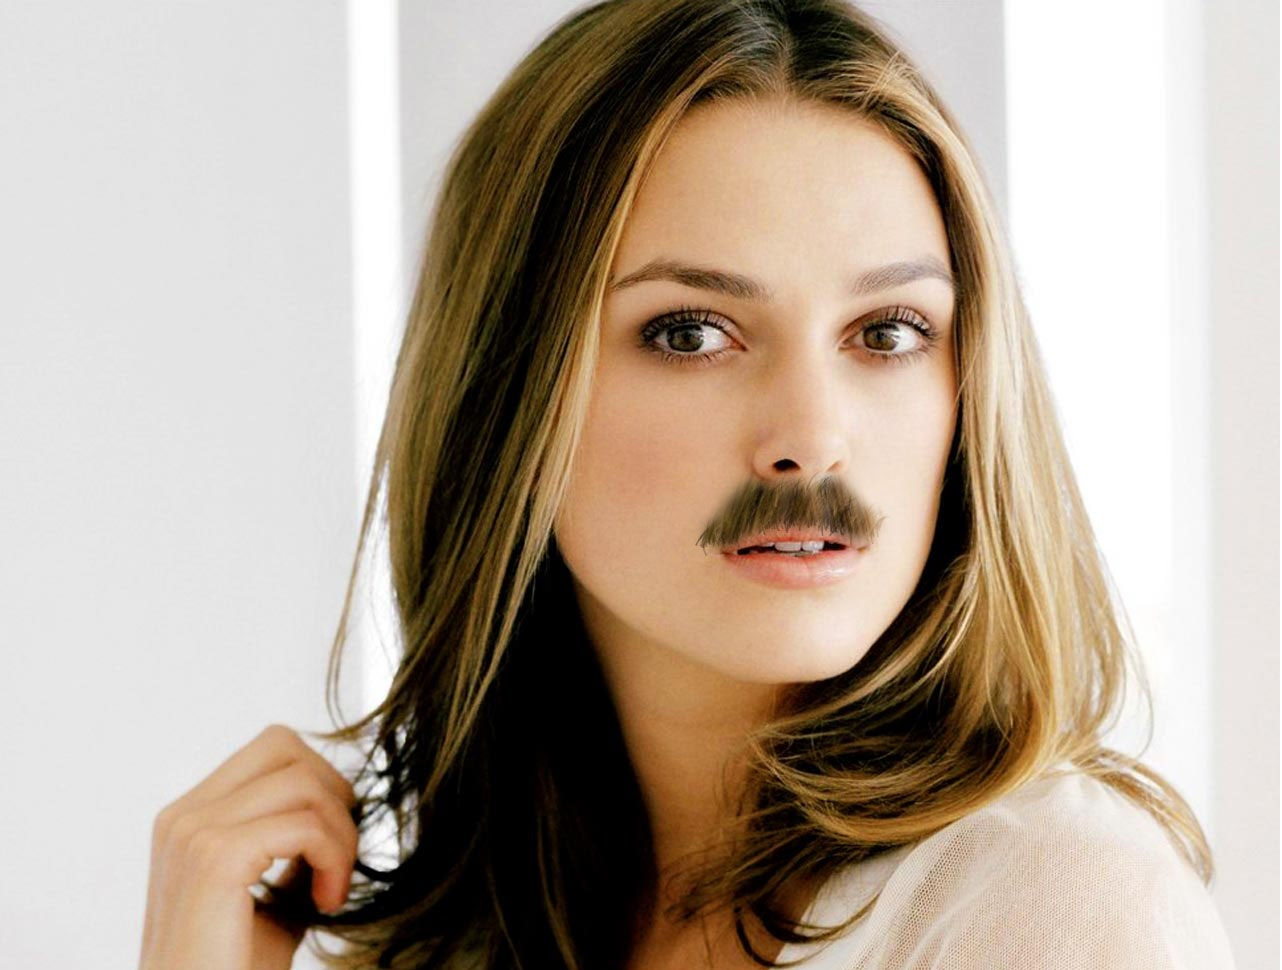 Actresses with mustaches